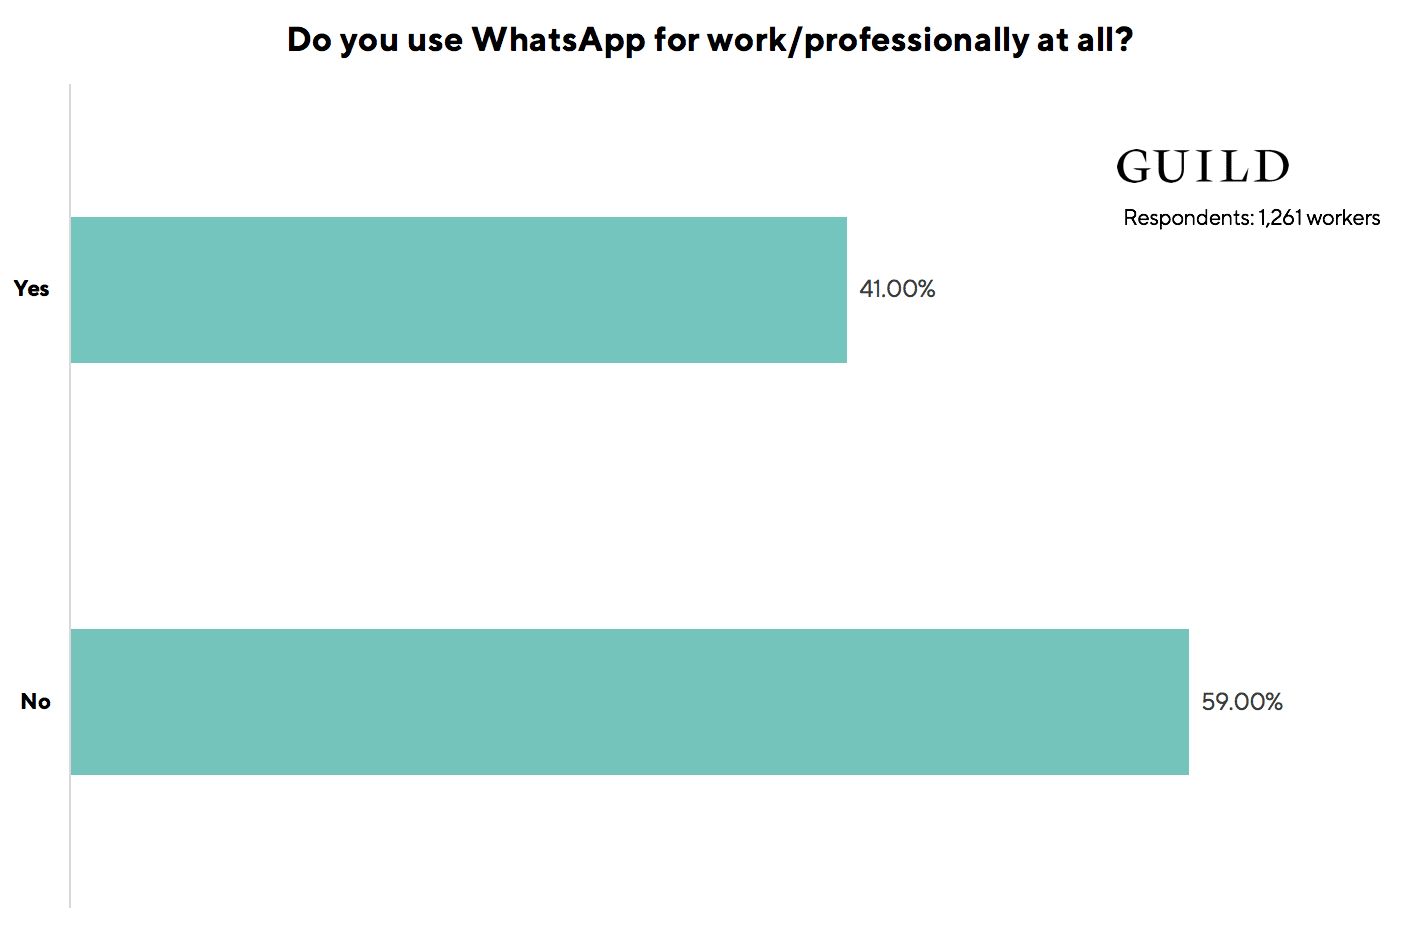 WhatsApp statistics: 41% of workers surveyed use the WhatsApp consumer messaging app professionally